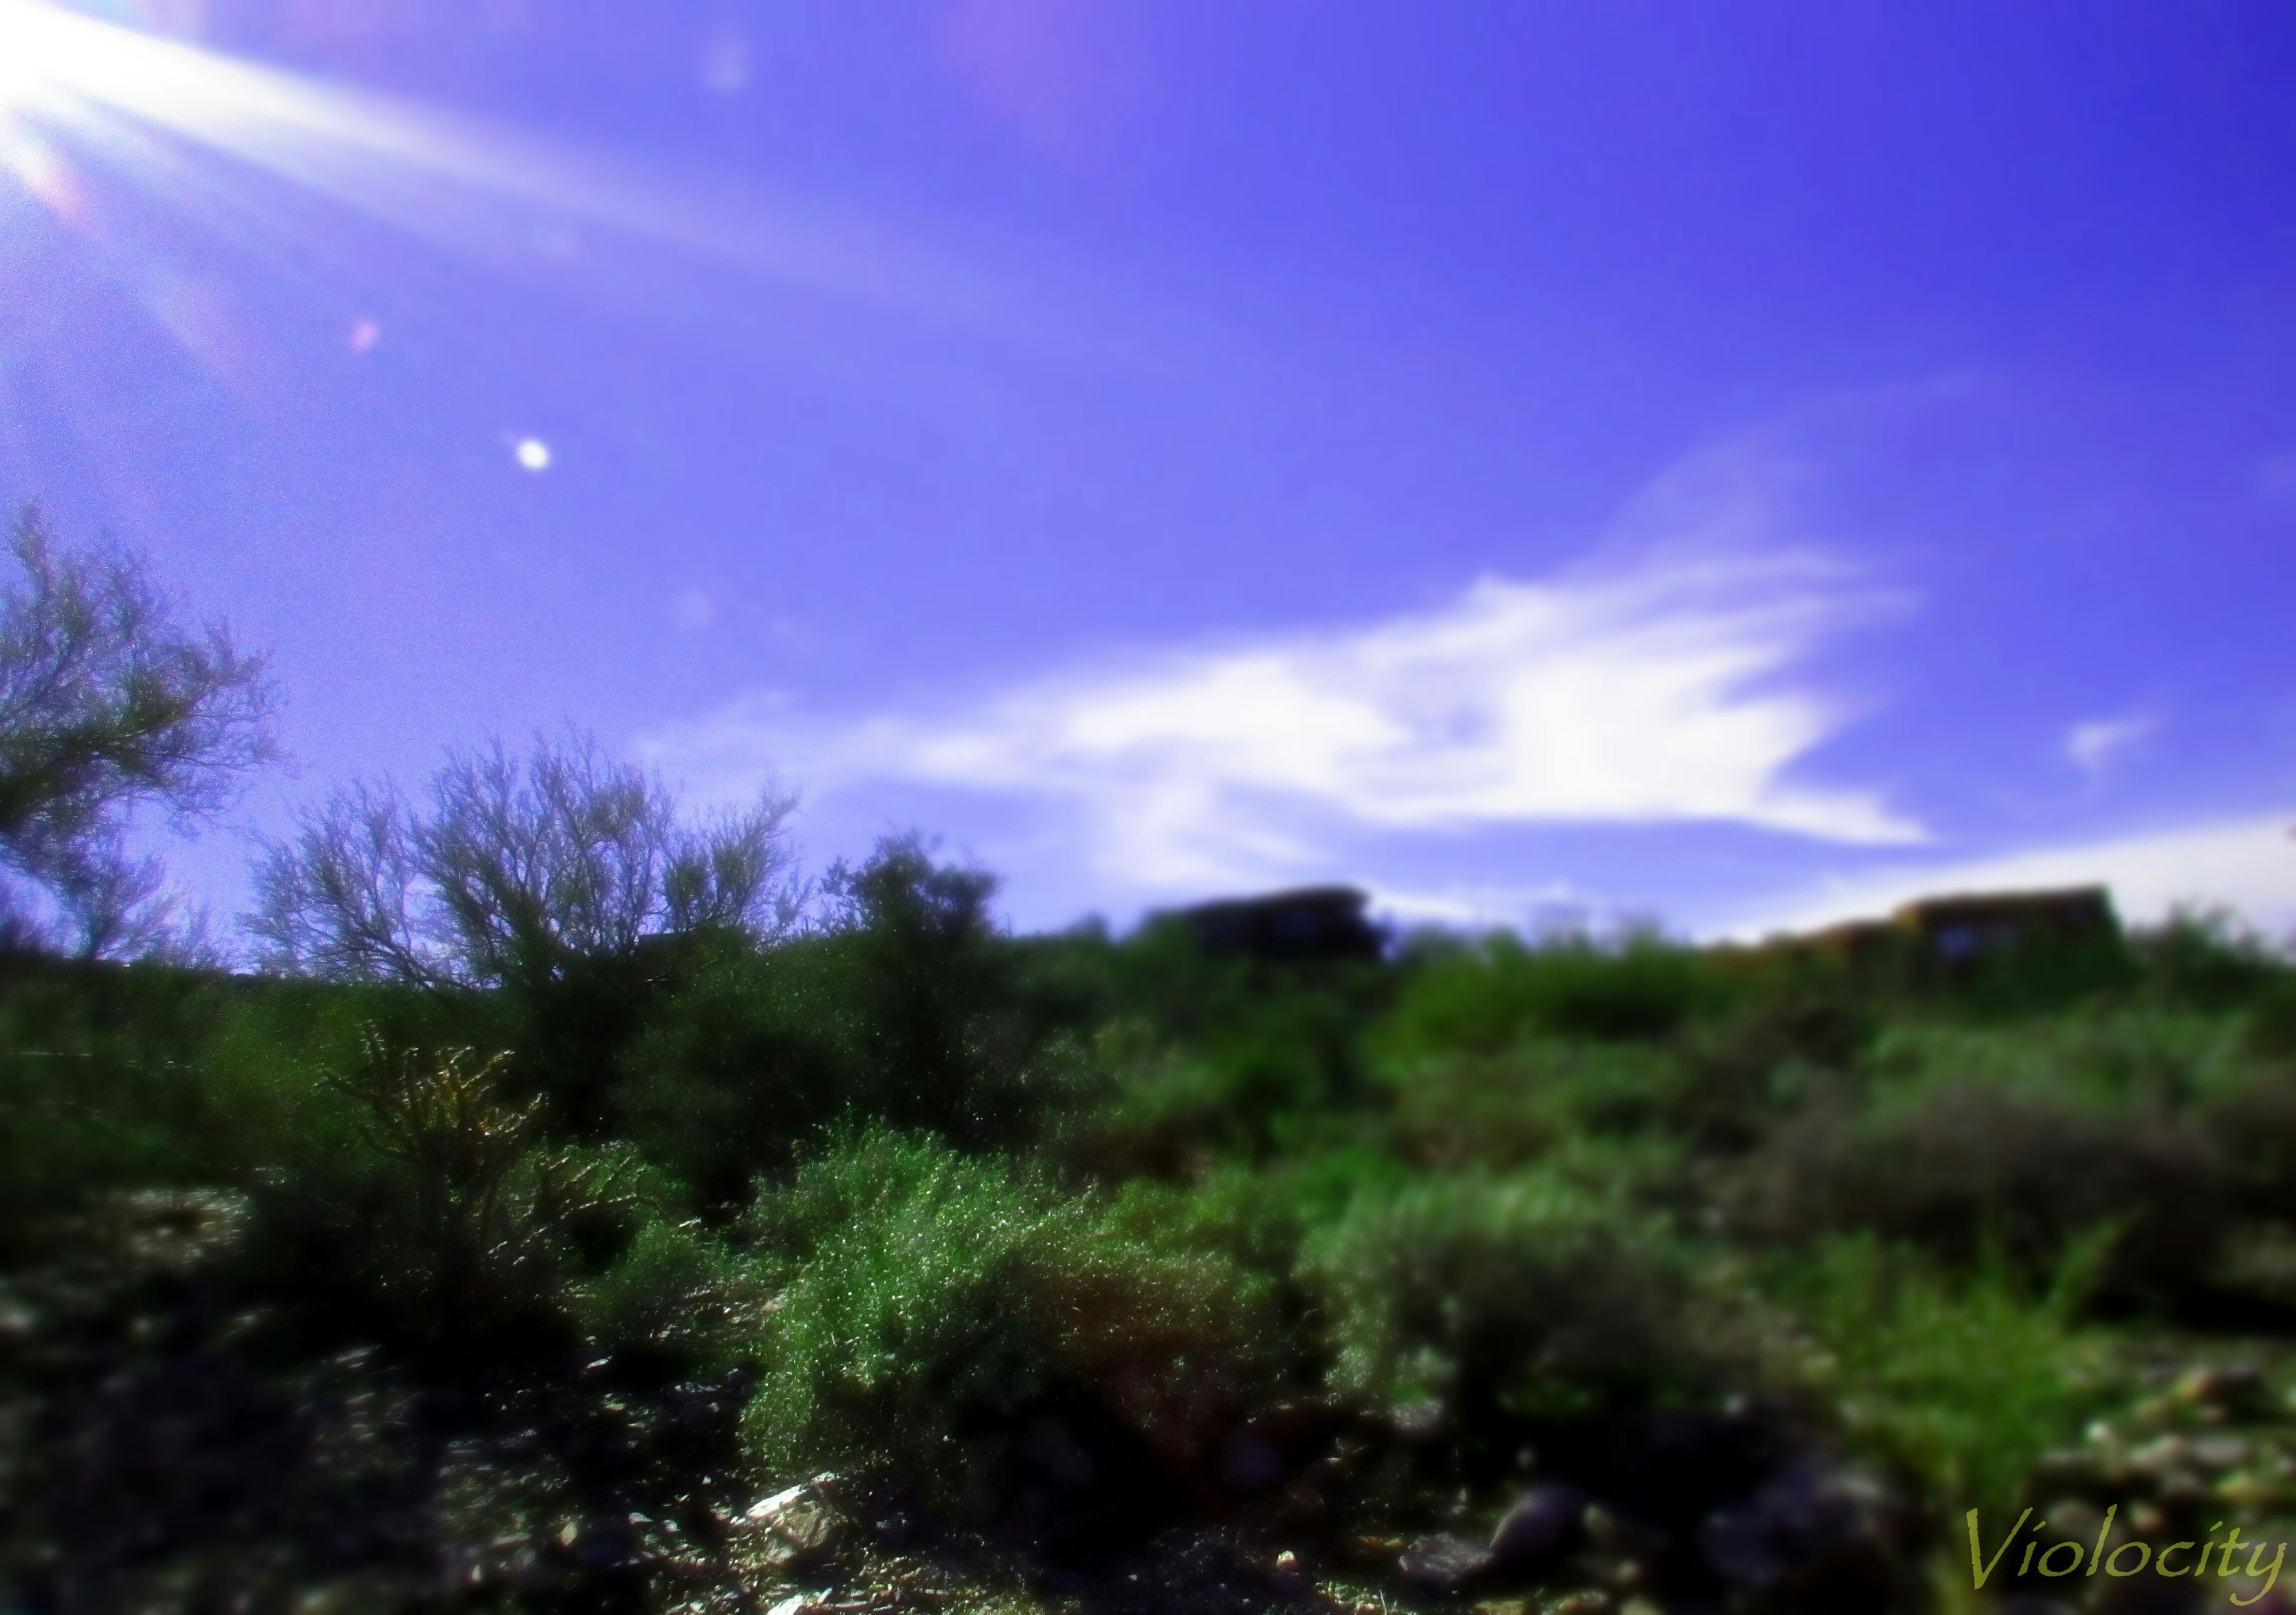 sky, beauty in nature, tranquility, blue, tranquil scene, nature, scenics, growth, plant, grass, green color, landscape, tree, field, cloud - sky, outdoors, non-urban scene, idyllic, sunlight, lens flare